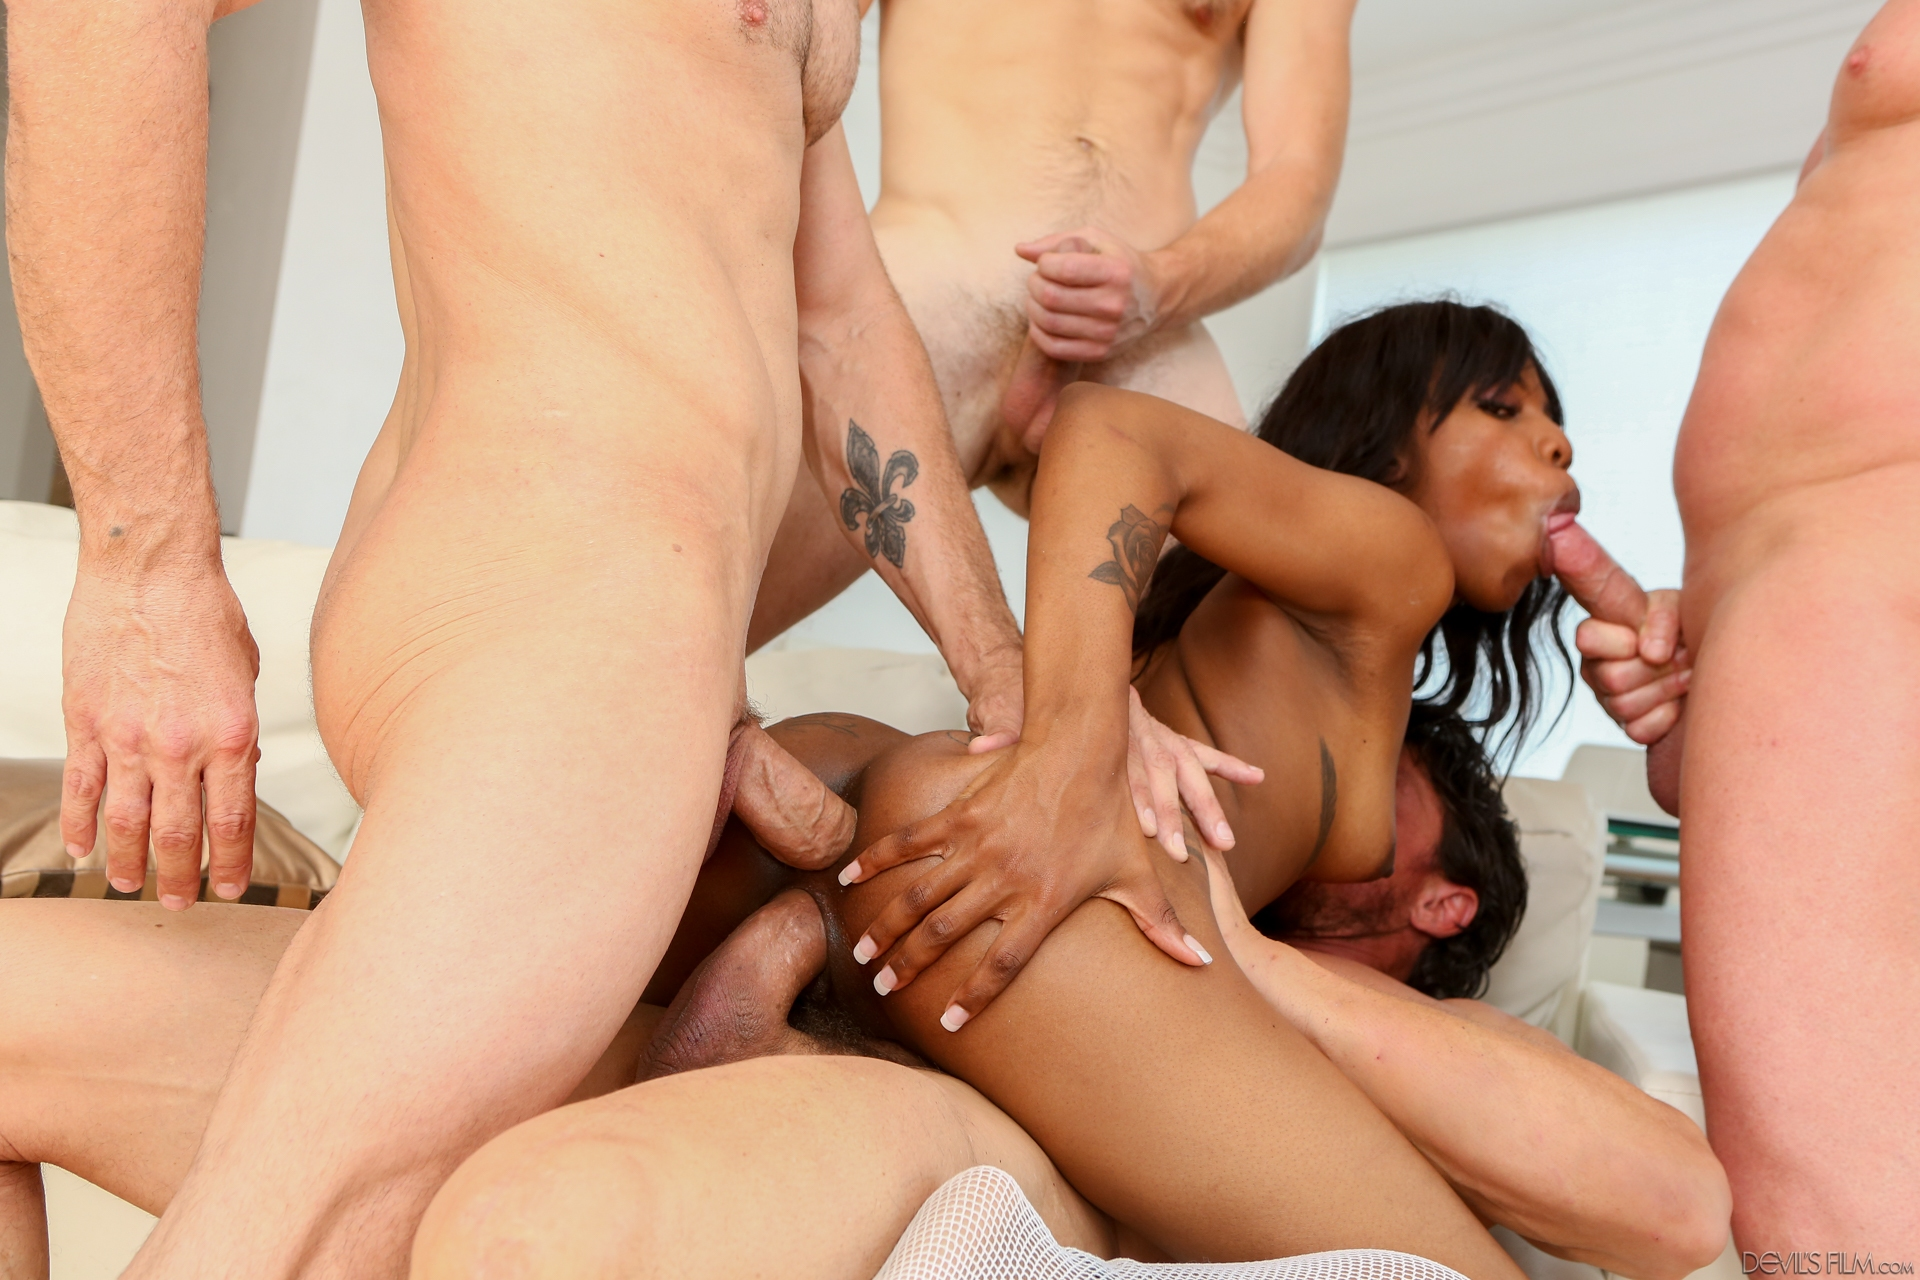 Black Girl White Guy  Most Sexy Porn  Free Hd  4K Photos-4291